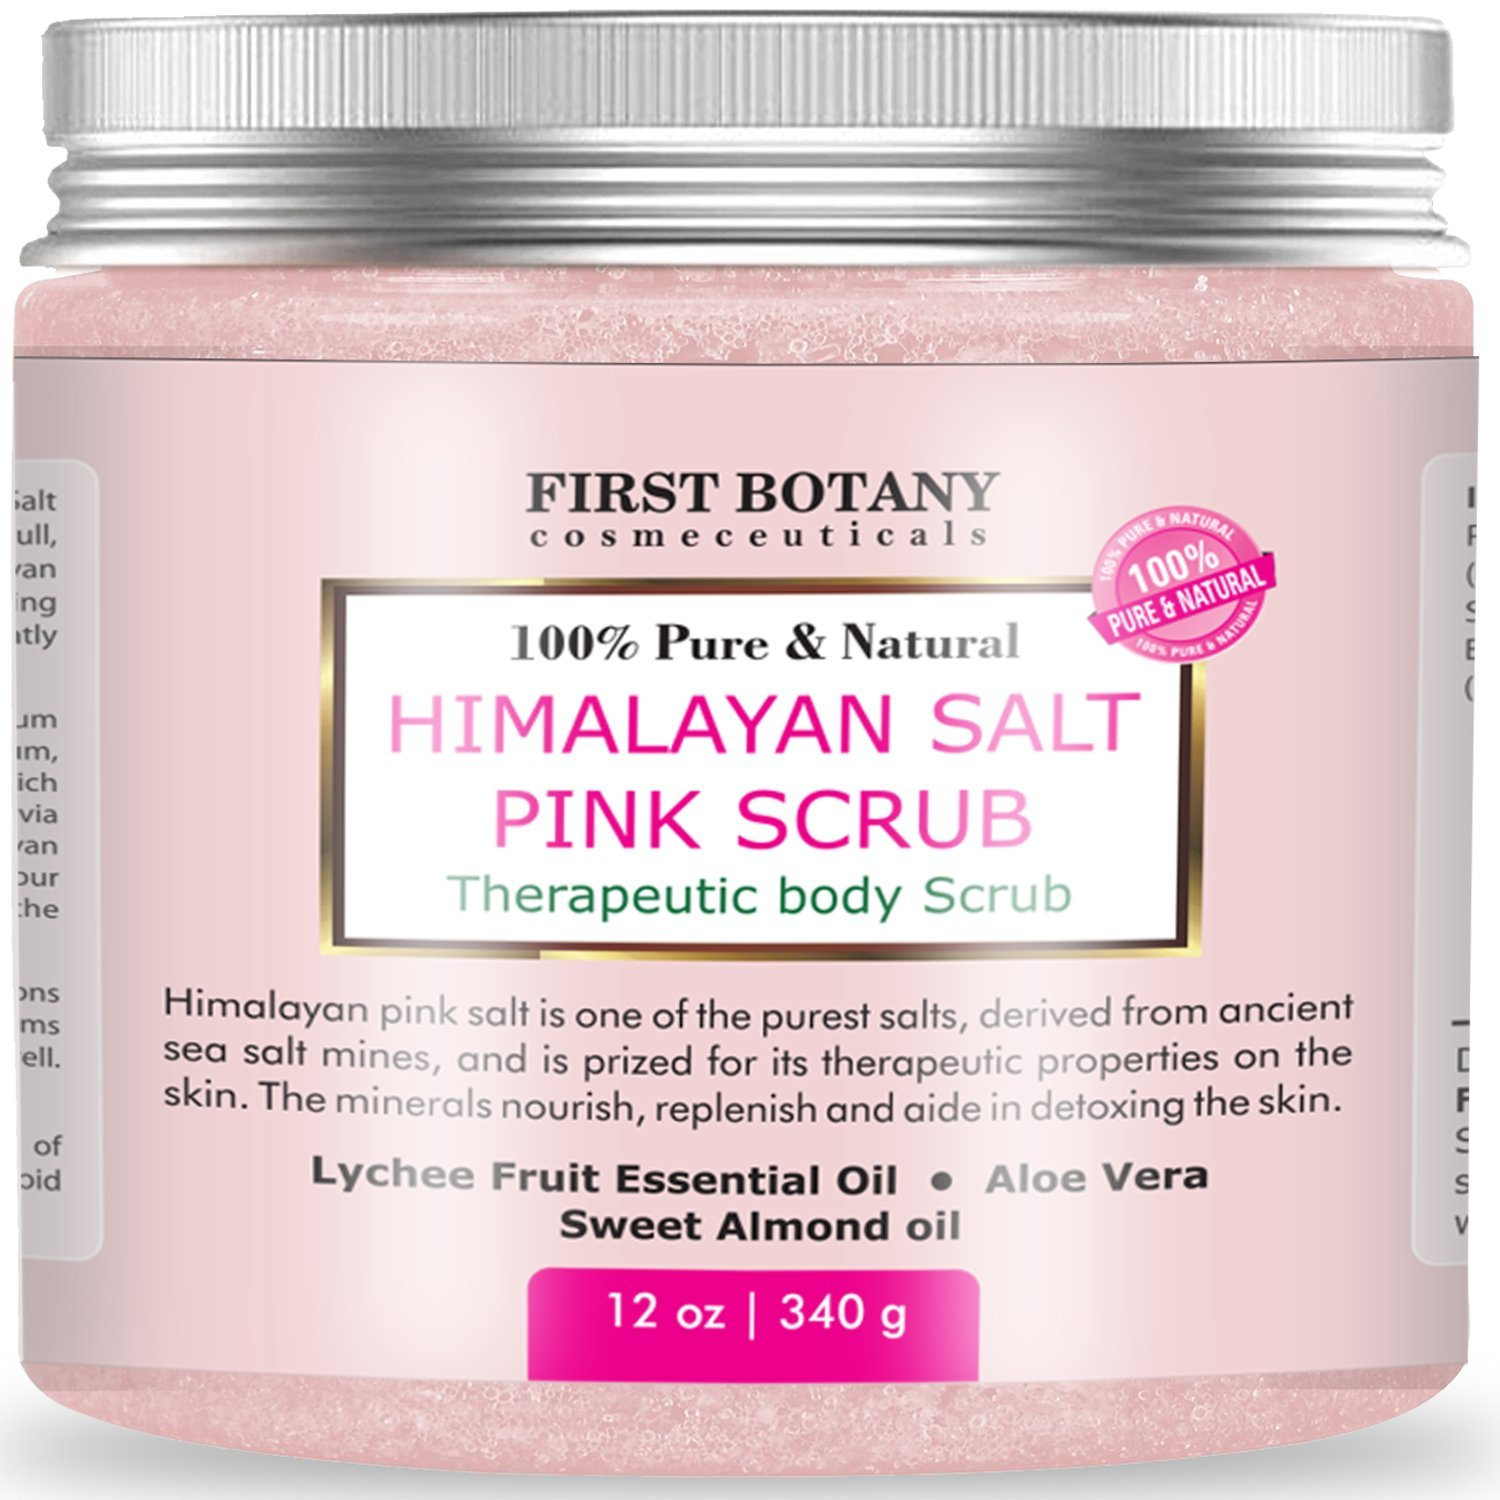 100% Natural Himalayan Salt Full Body Scrub 12 oz with Lychee Oil and Sweet Almond Oil- Best Body scrub, Deep Skin Exfoliator, Anti Cellulite, Body Wash, Moisturizer & Detox by First Botany Cosmeceuticals